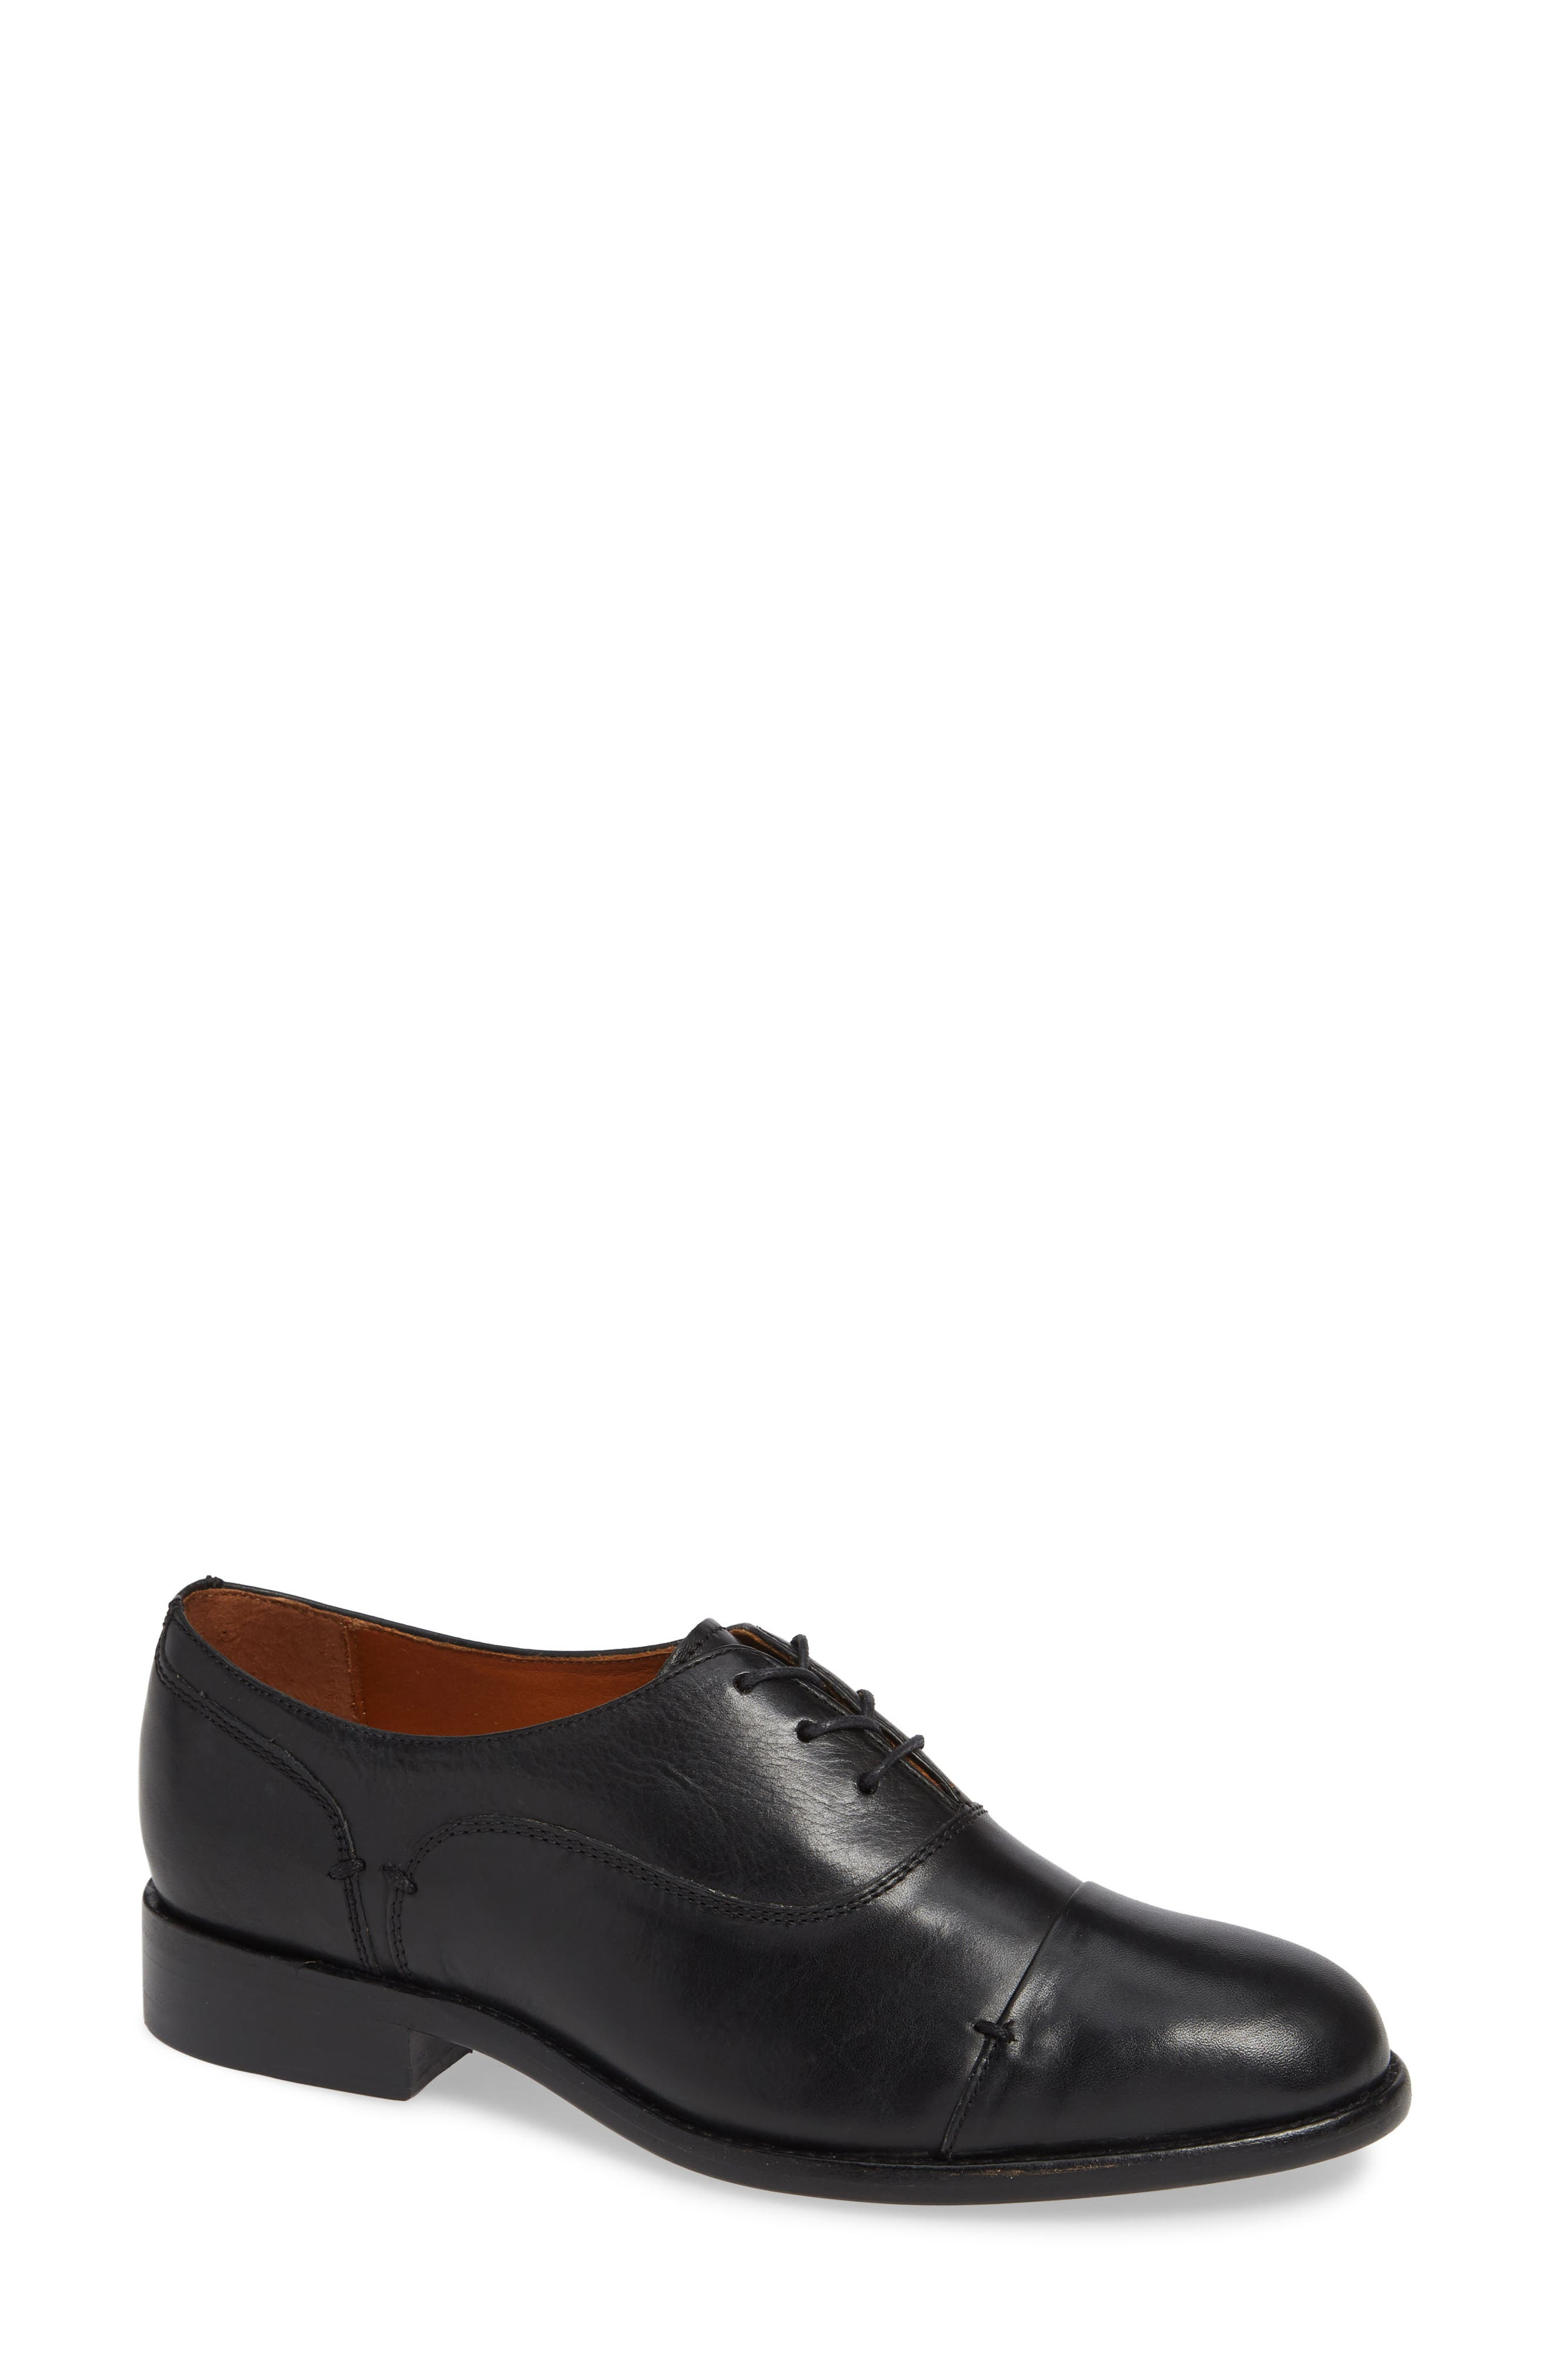 by Ariat Austen Optional Lace-Up Oxford, Main, color, BLACK LEATHER